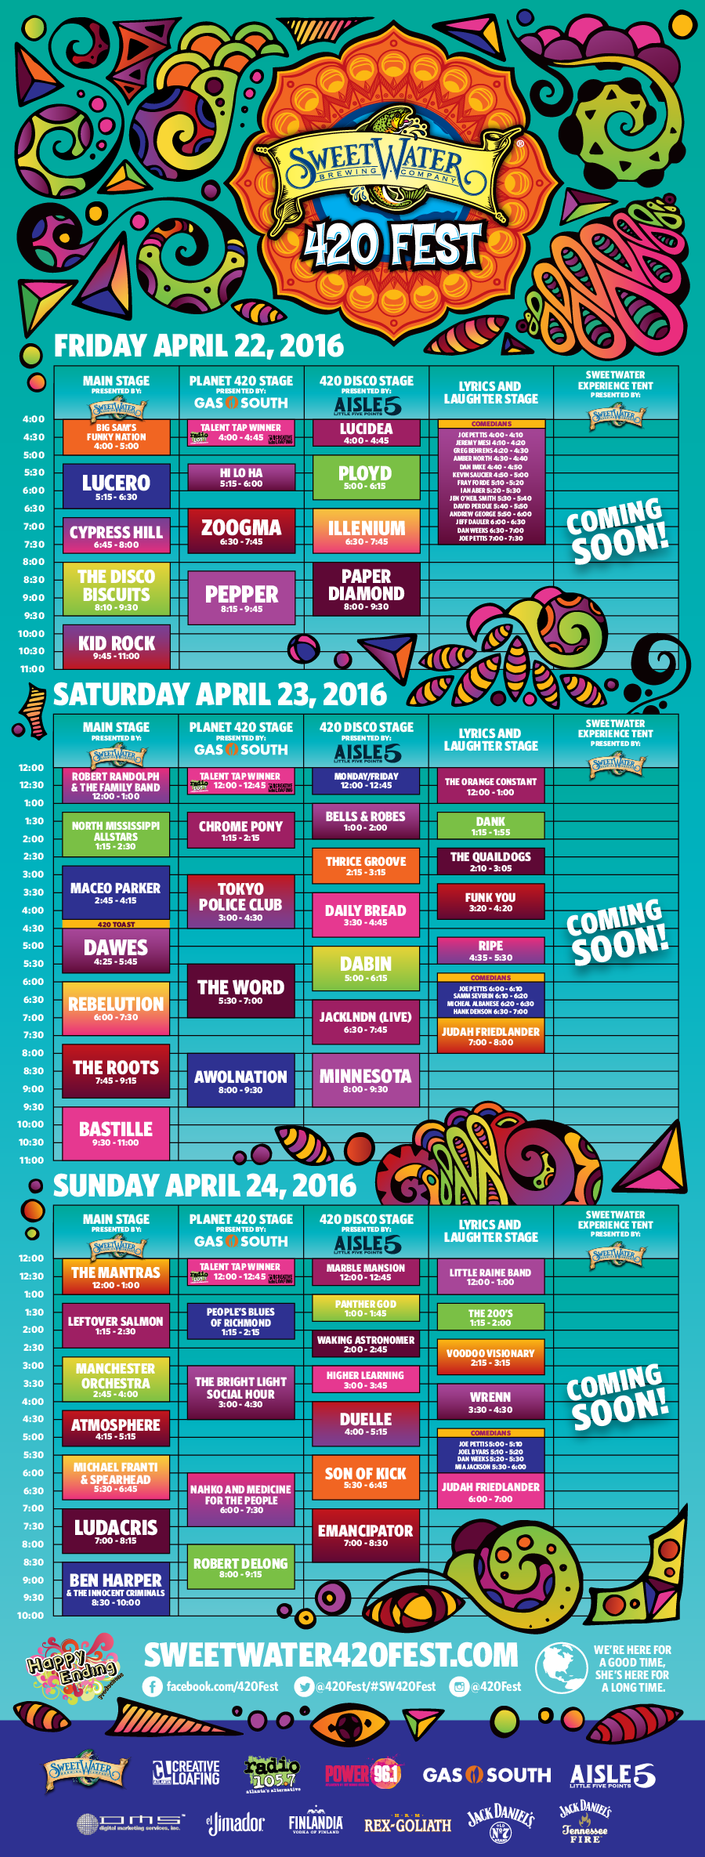 Sweetwater 420 Fest Announces Daily Schedule